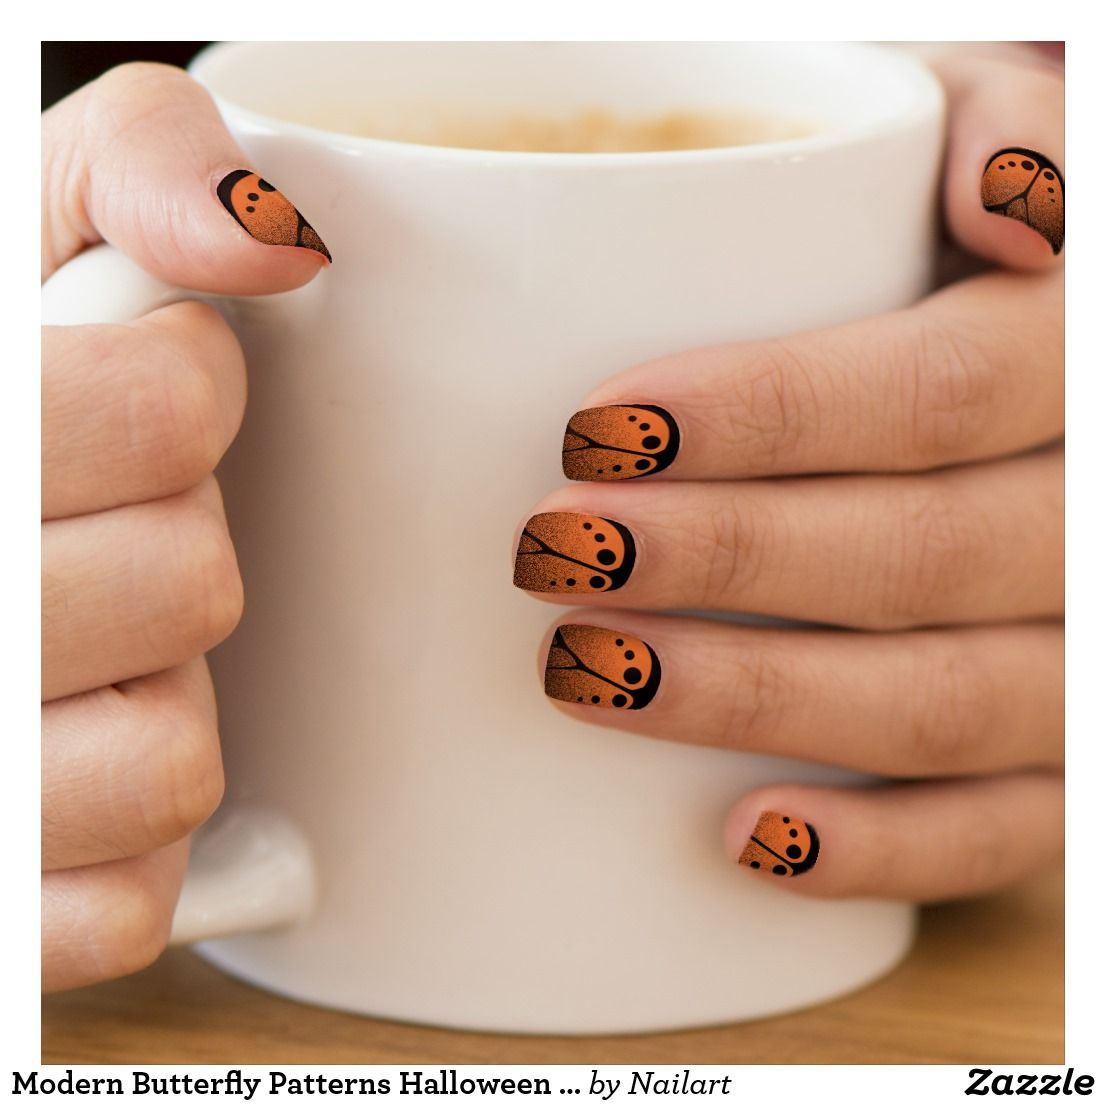 Modern Butterfly Patterns Halloween Orange Minx Nail Wraps ...